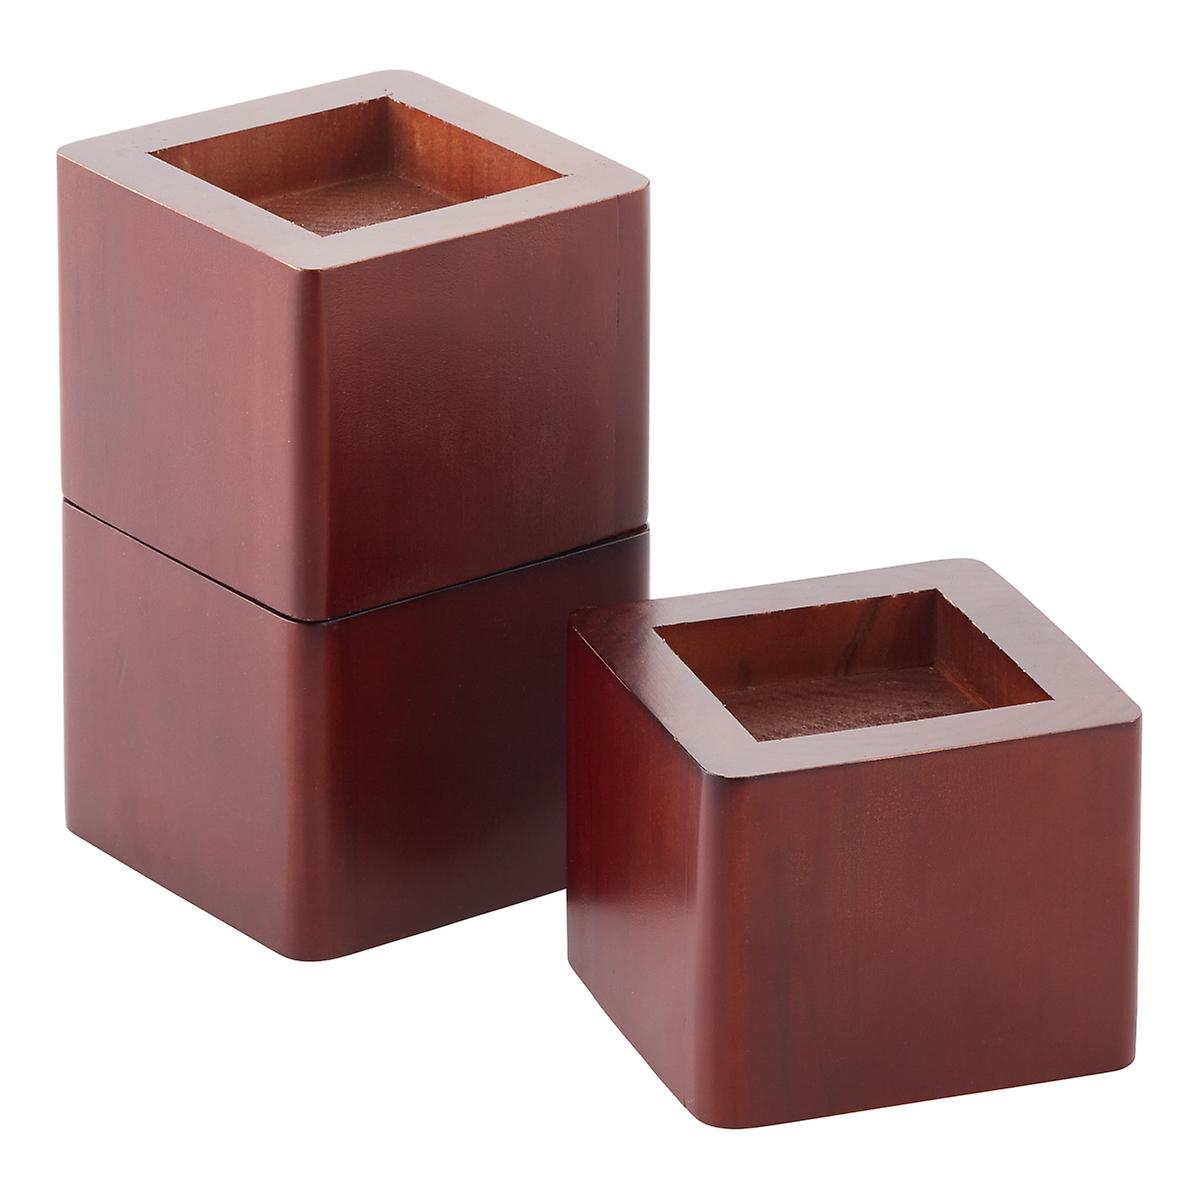 walnut solid wood bed risers | the container store